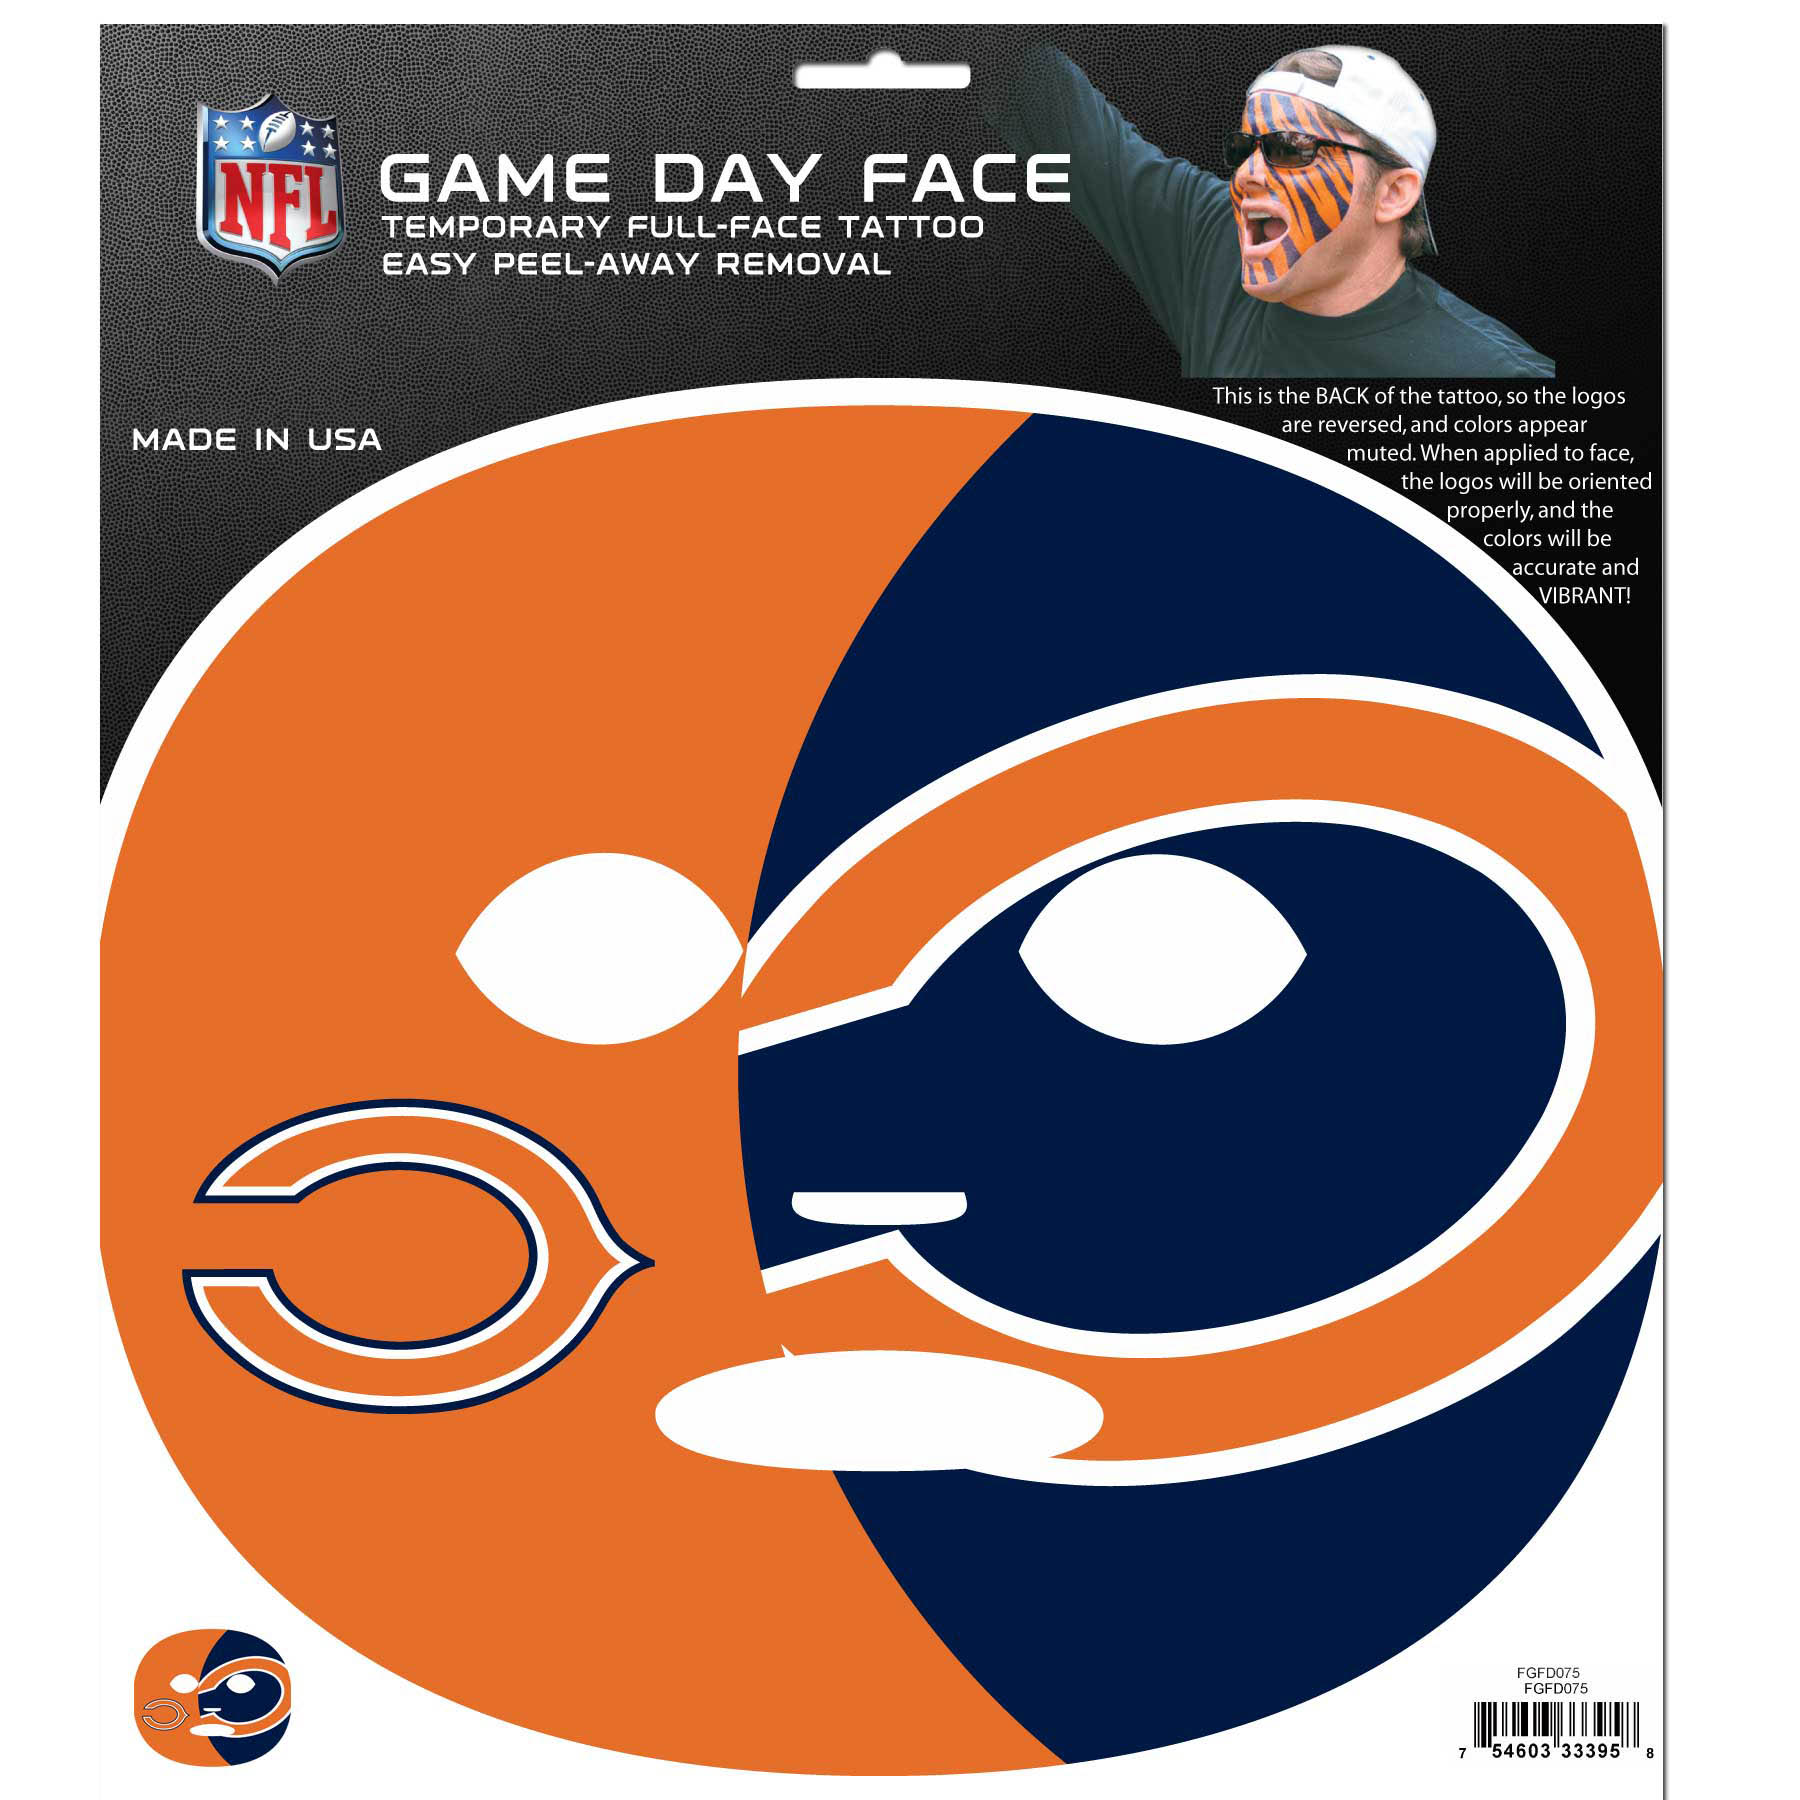 Chicago Bears Set of 8 Game Day Faces - No better way to show your team pride than by painting your face. Siskiyou's Game Day Face Temporary Tattoo isn't your typical face paint. It is a water based application that doesn't smudge, smear or sweat off while you're wearing it and easily peels off after you're done celebrating your team's big Win! The temporary tattoo is large enough to trim down to fit your face. Our Game Day Face Temporary Tattoo's are fun for fans of all ages. You may have seen our product before, these are the same Temporary Face Tattoos as pitched on ABC's Shark Tank.